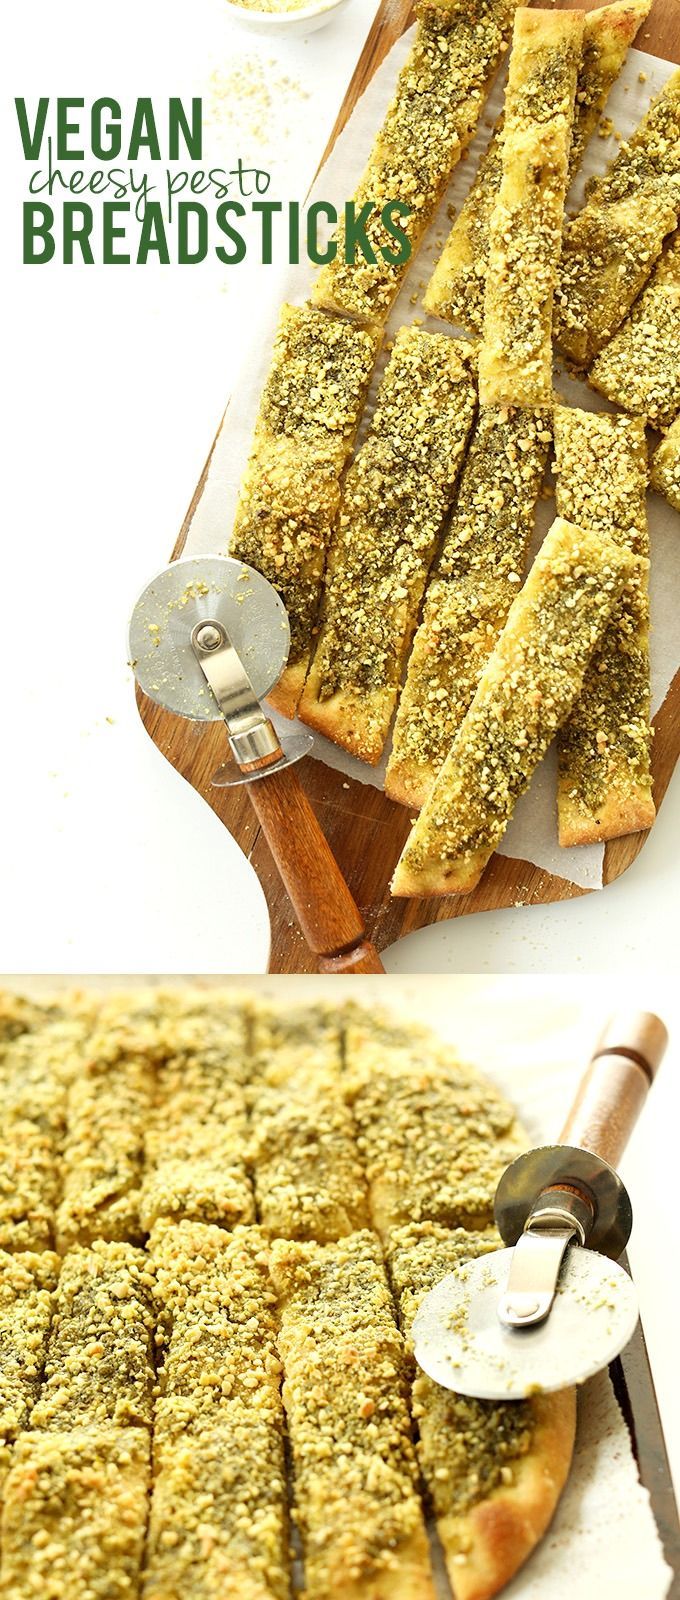 Vegan Pesto 'Parmesan' Breadsticks! Savory, simple and perfect with marinara or alongside pasta #vegan. Farm Sanctuary is committed to ending cruelty to farm animals and promoting compassionate vegan living through rescue, education, and advocacy efforts. Please join us. A compassionate world begins with you! http://www.farmsanctuary.org